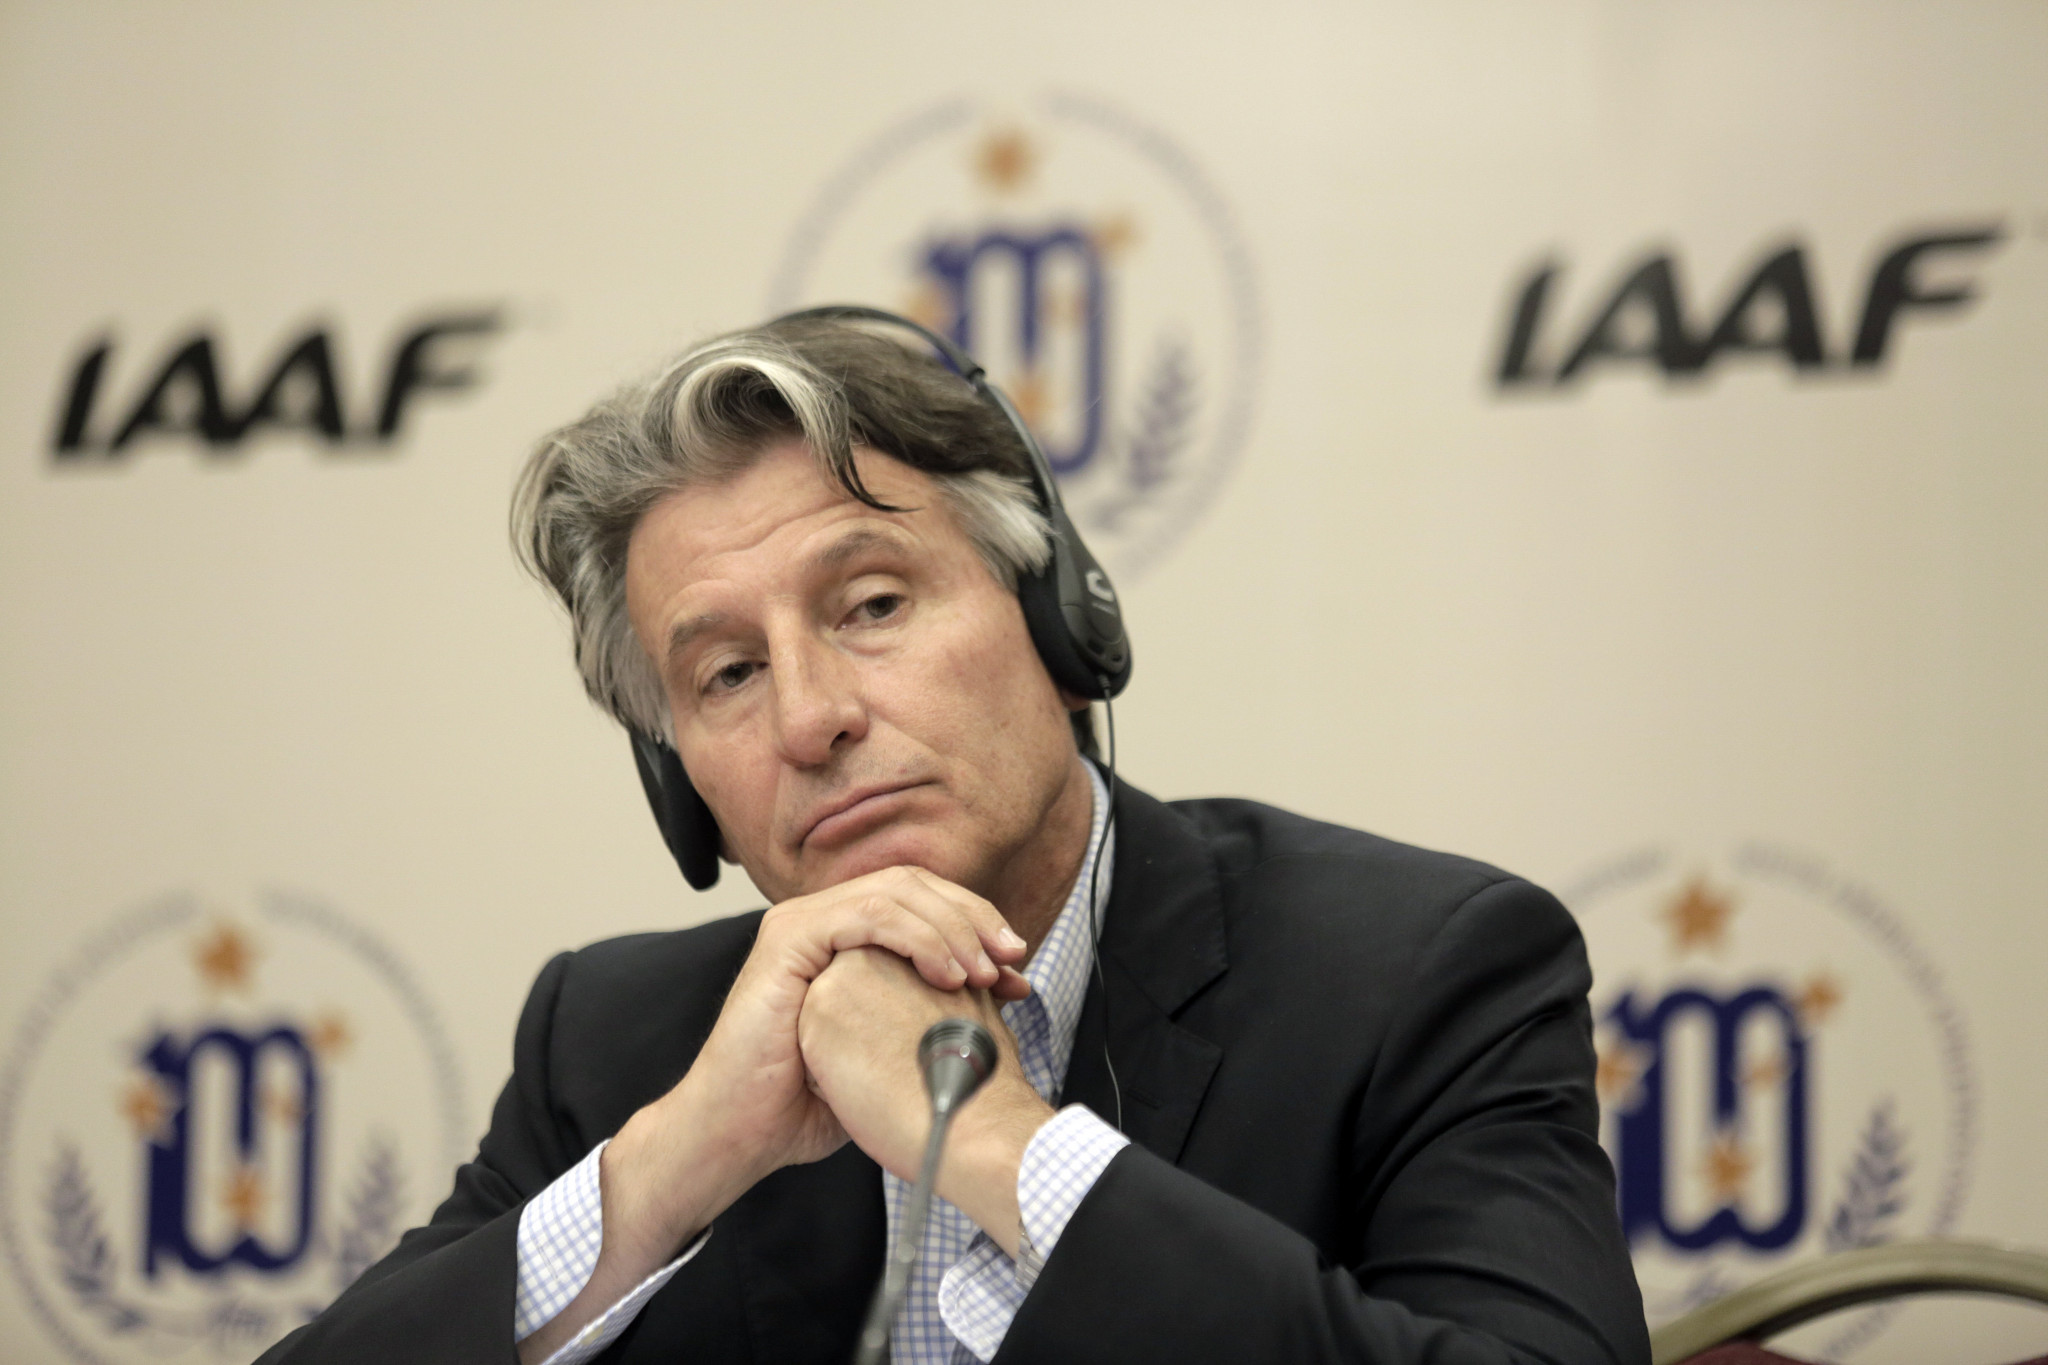 IAAF lift ban on athletes switching to compete for other countries